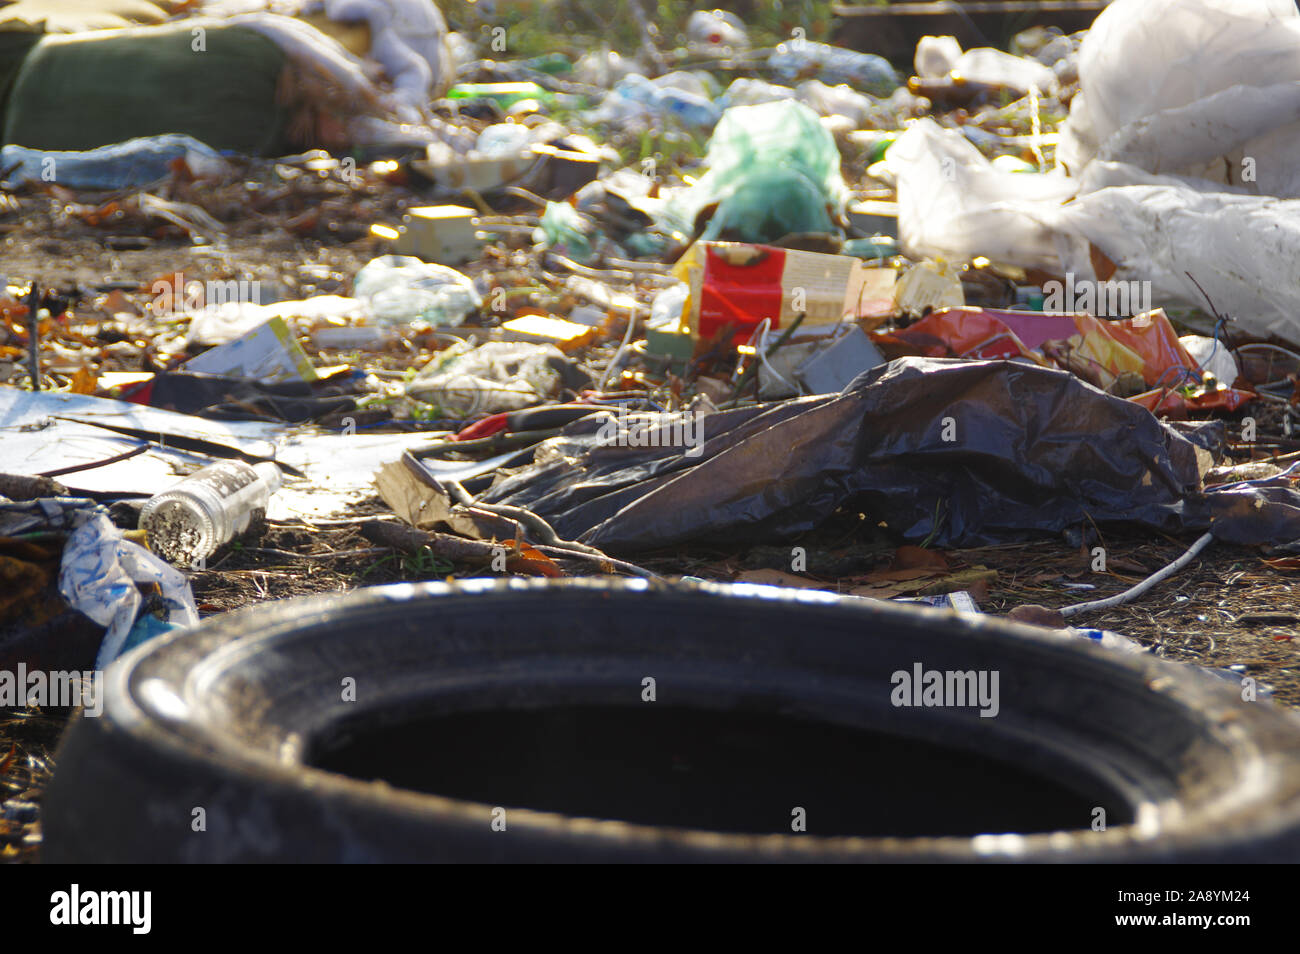 Heap of plastic garbage in the forest. Environmental protection concept. Stock Photo